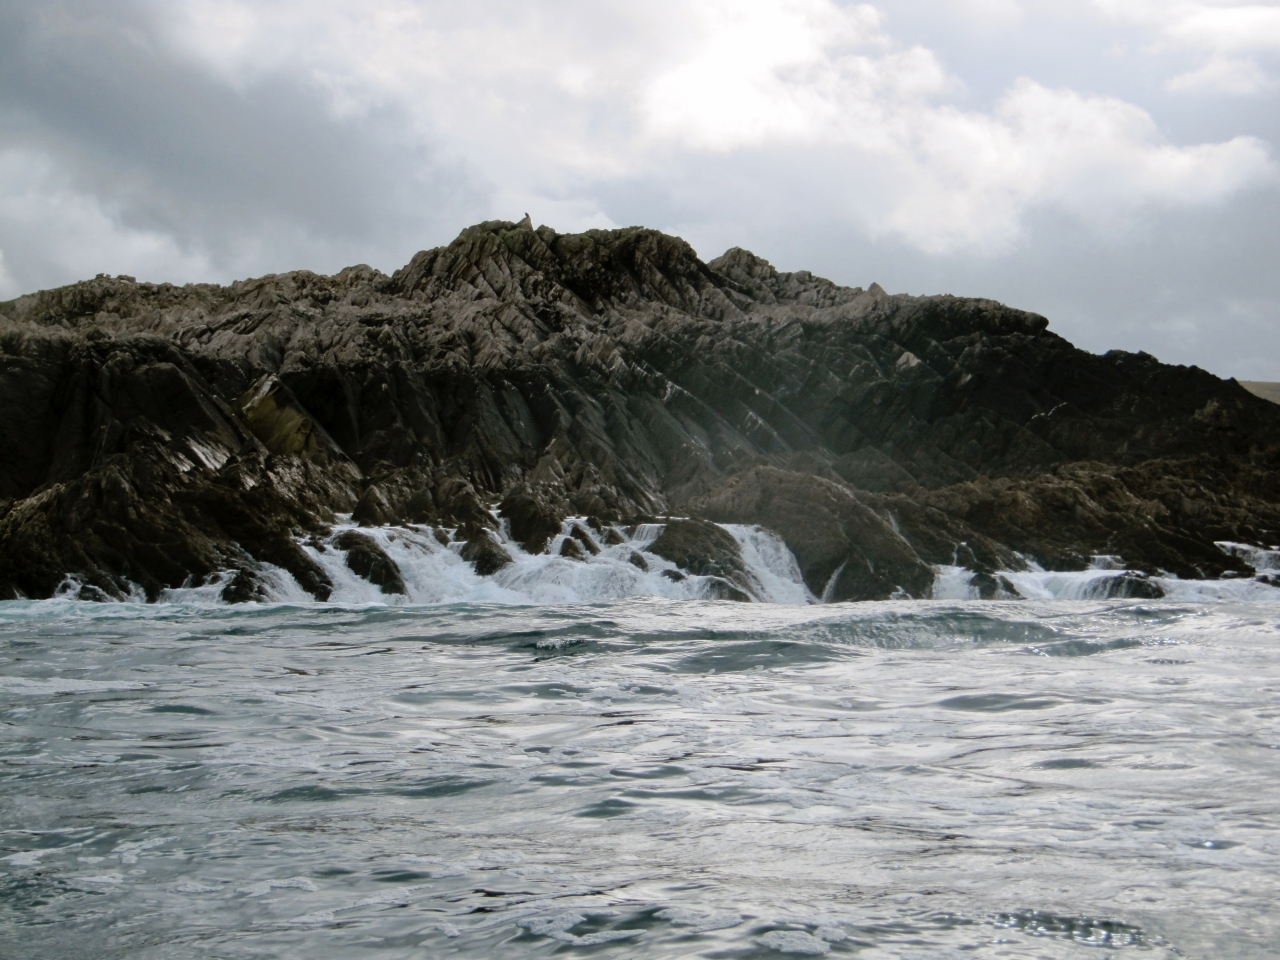 Off the coast of Aughalasheen